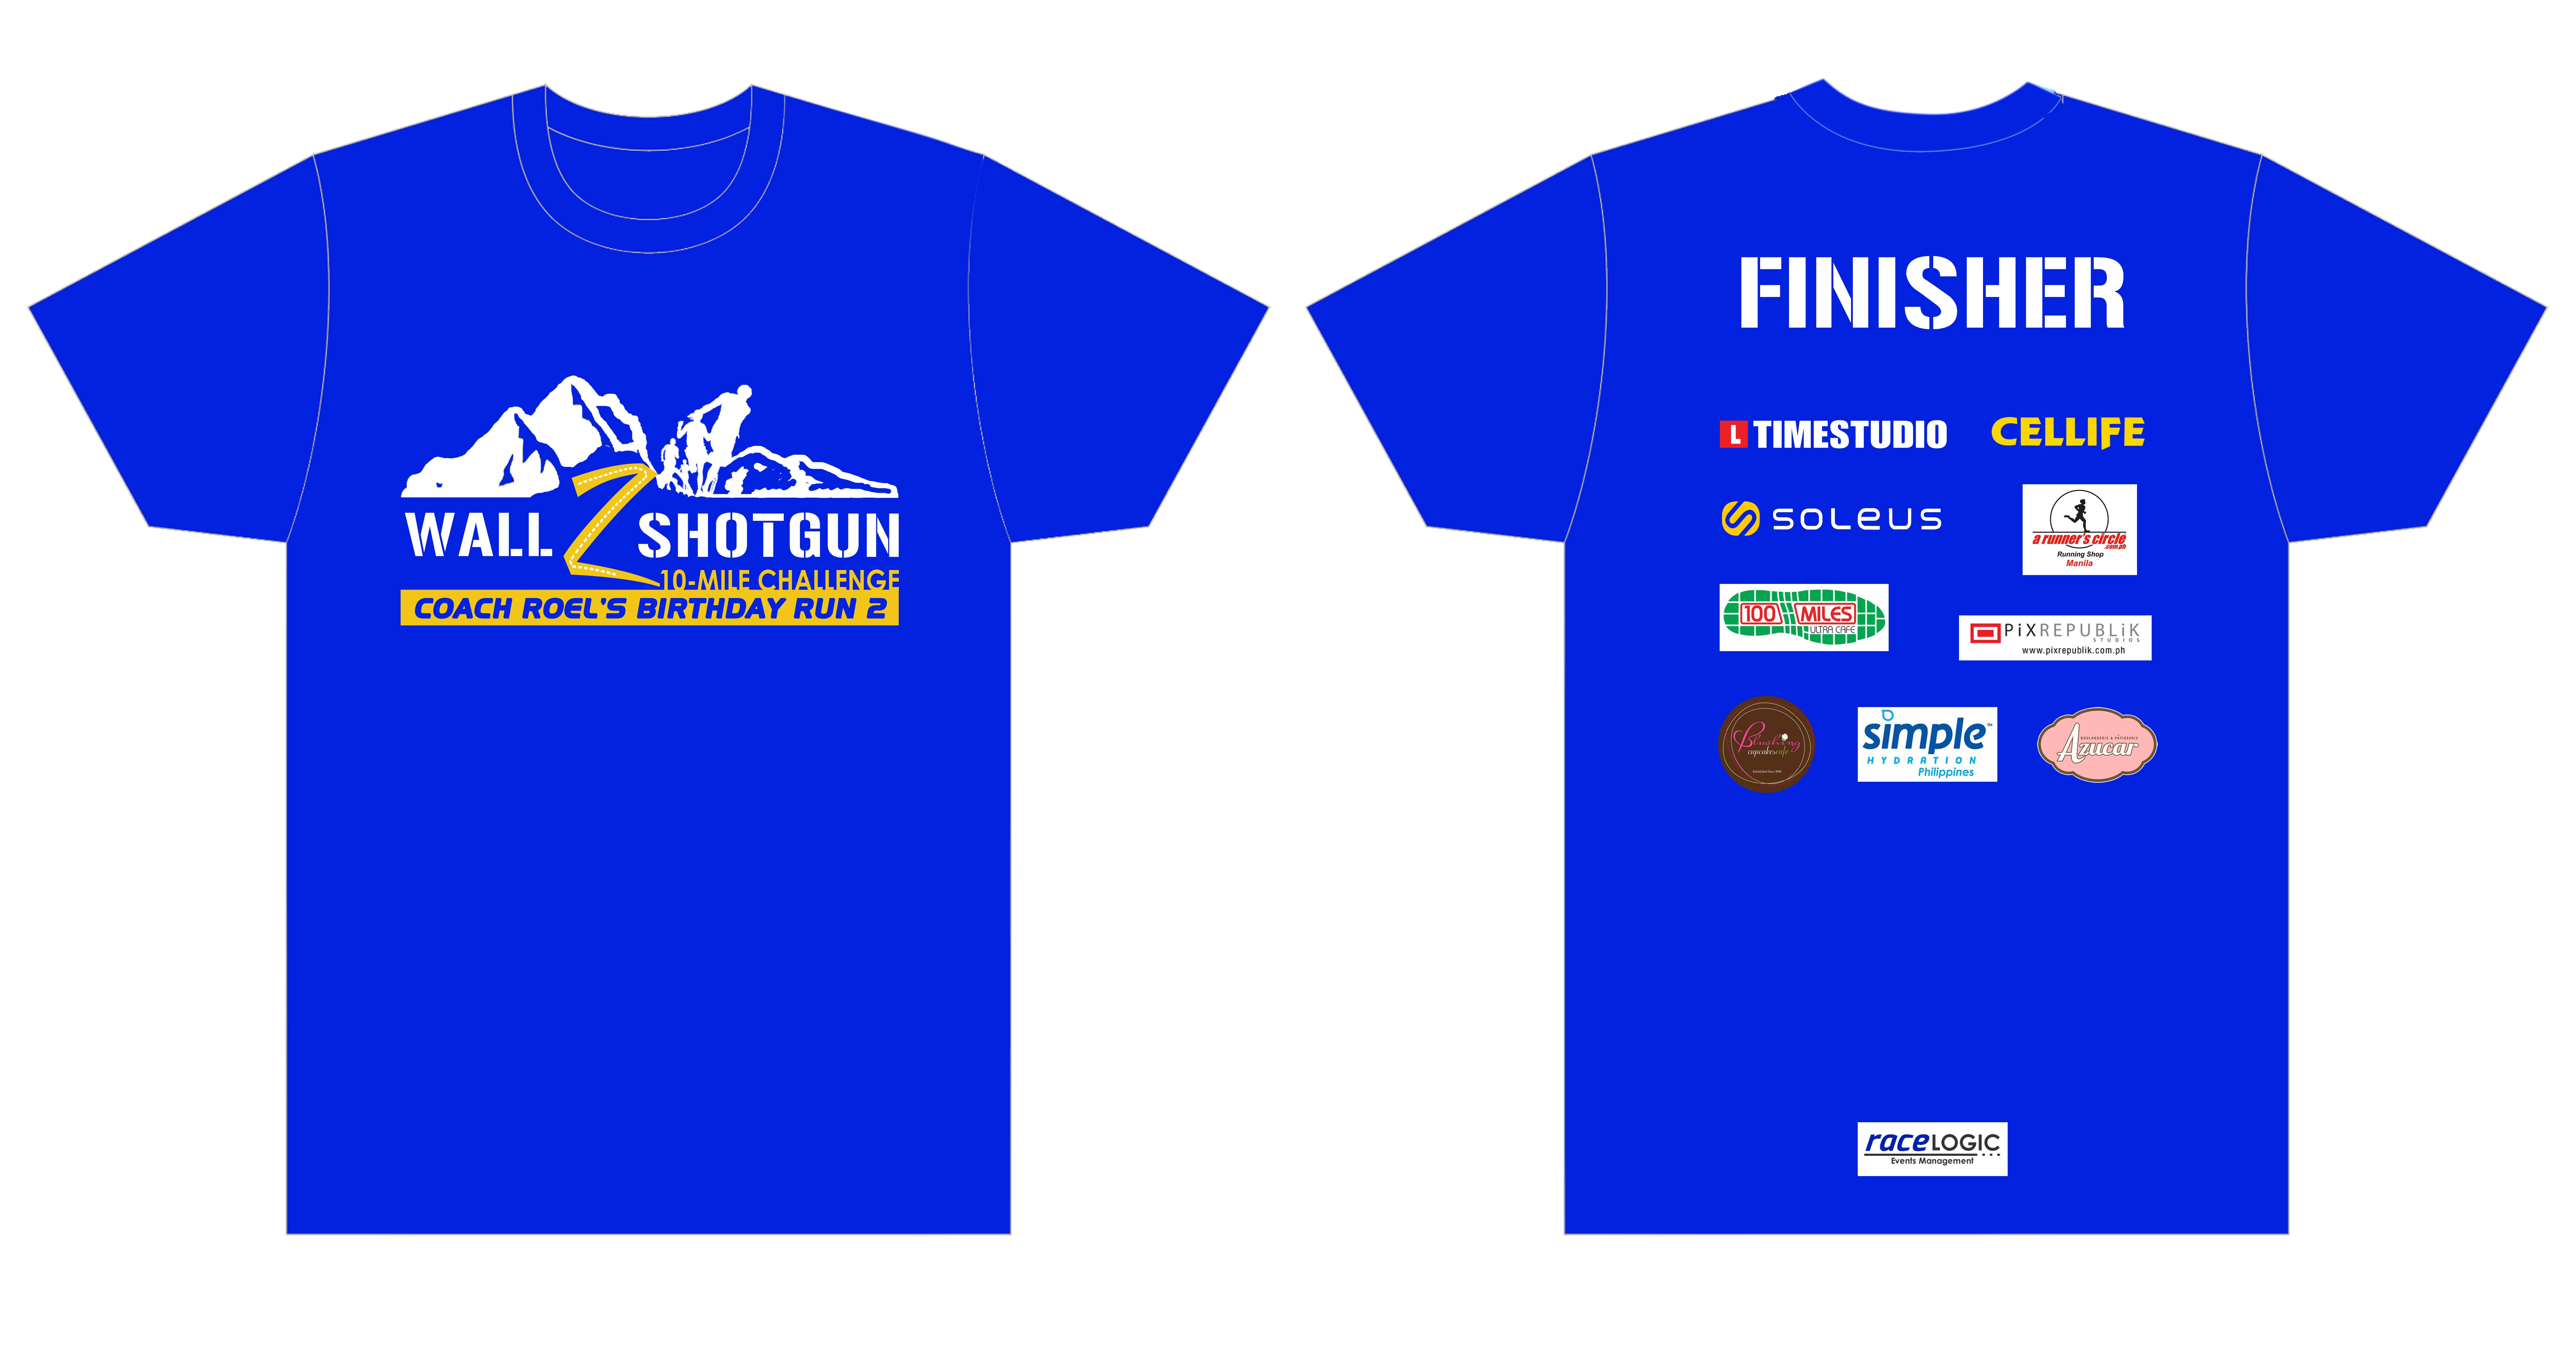 CoachRoel_Finisher Shirt